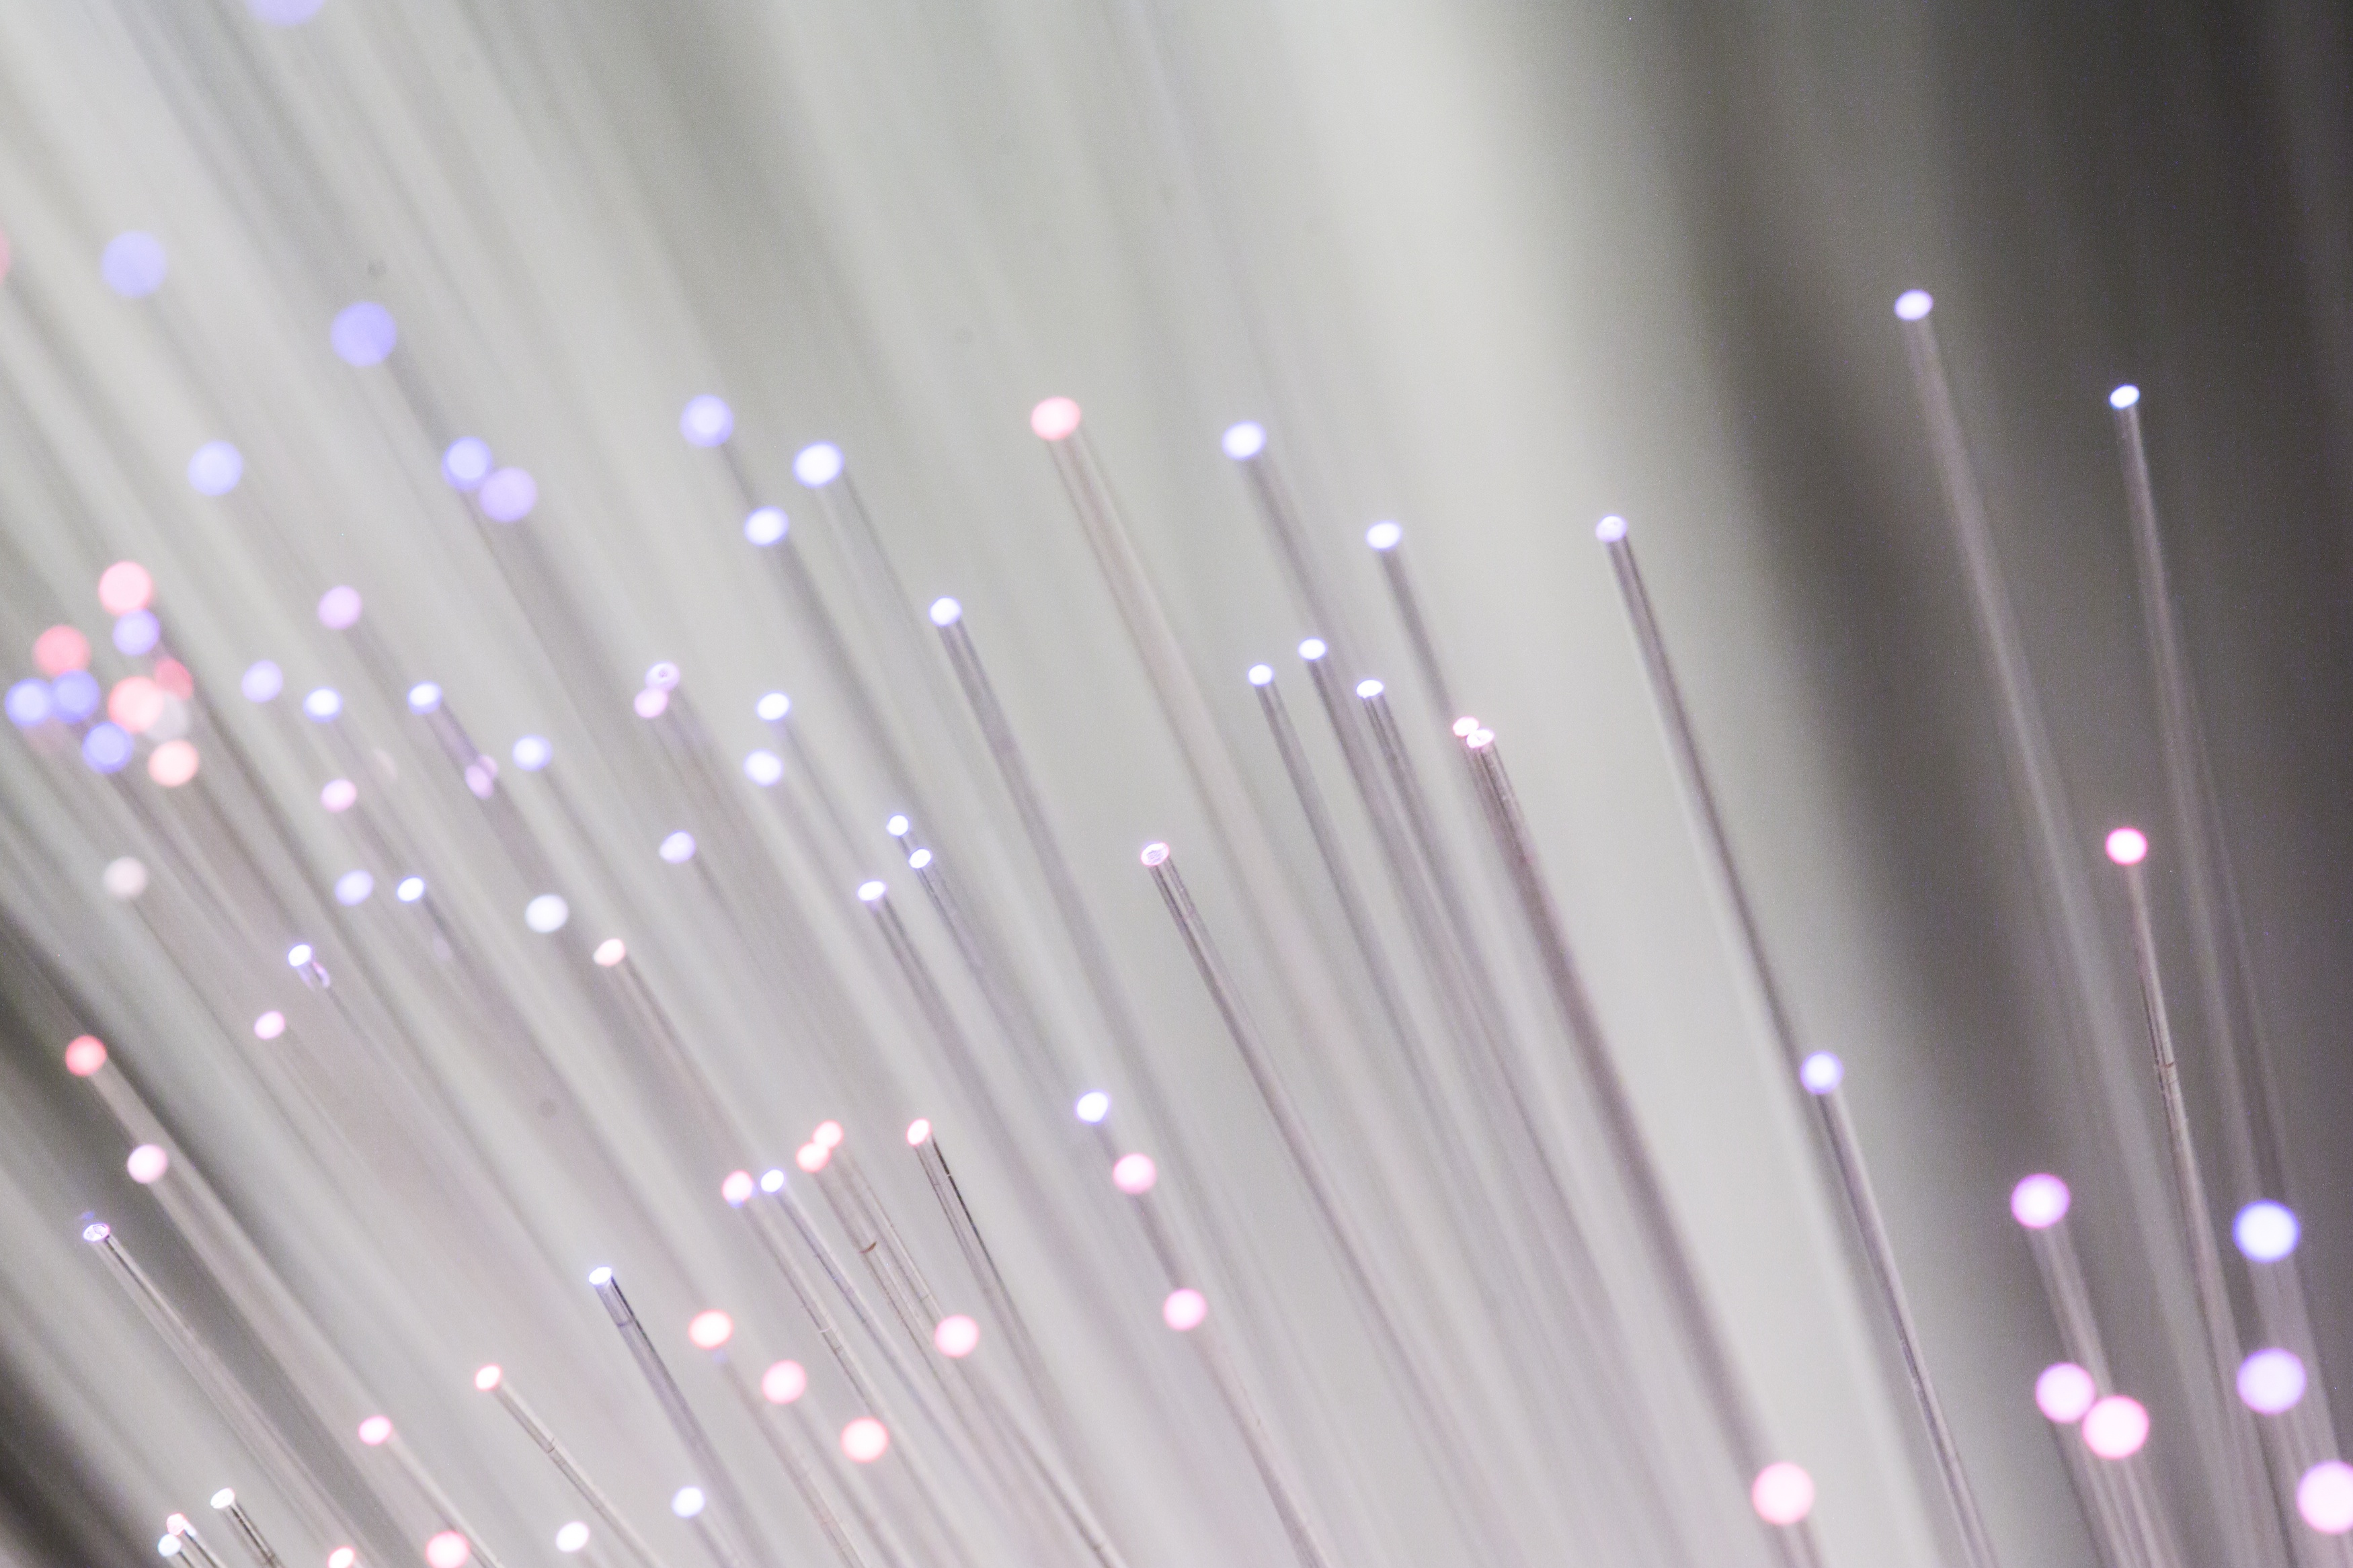 Pioneering the 4th Utility – Fiber to the Home